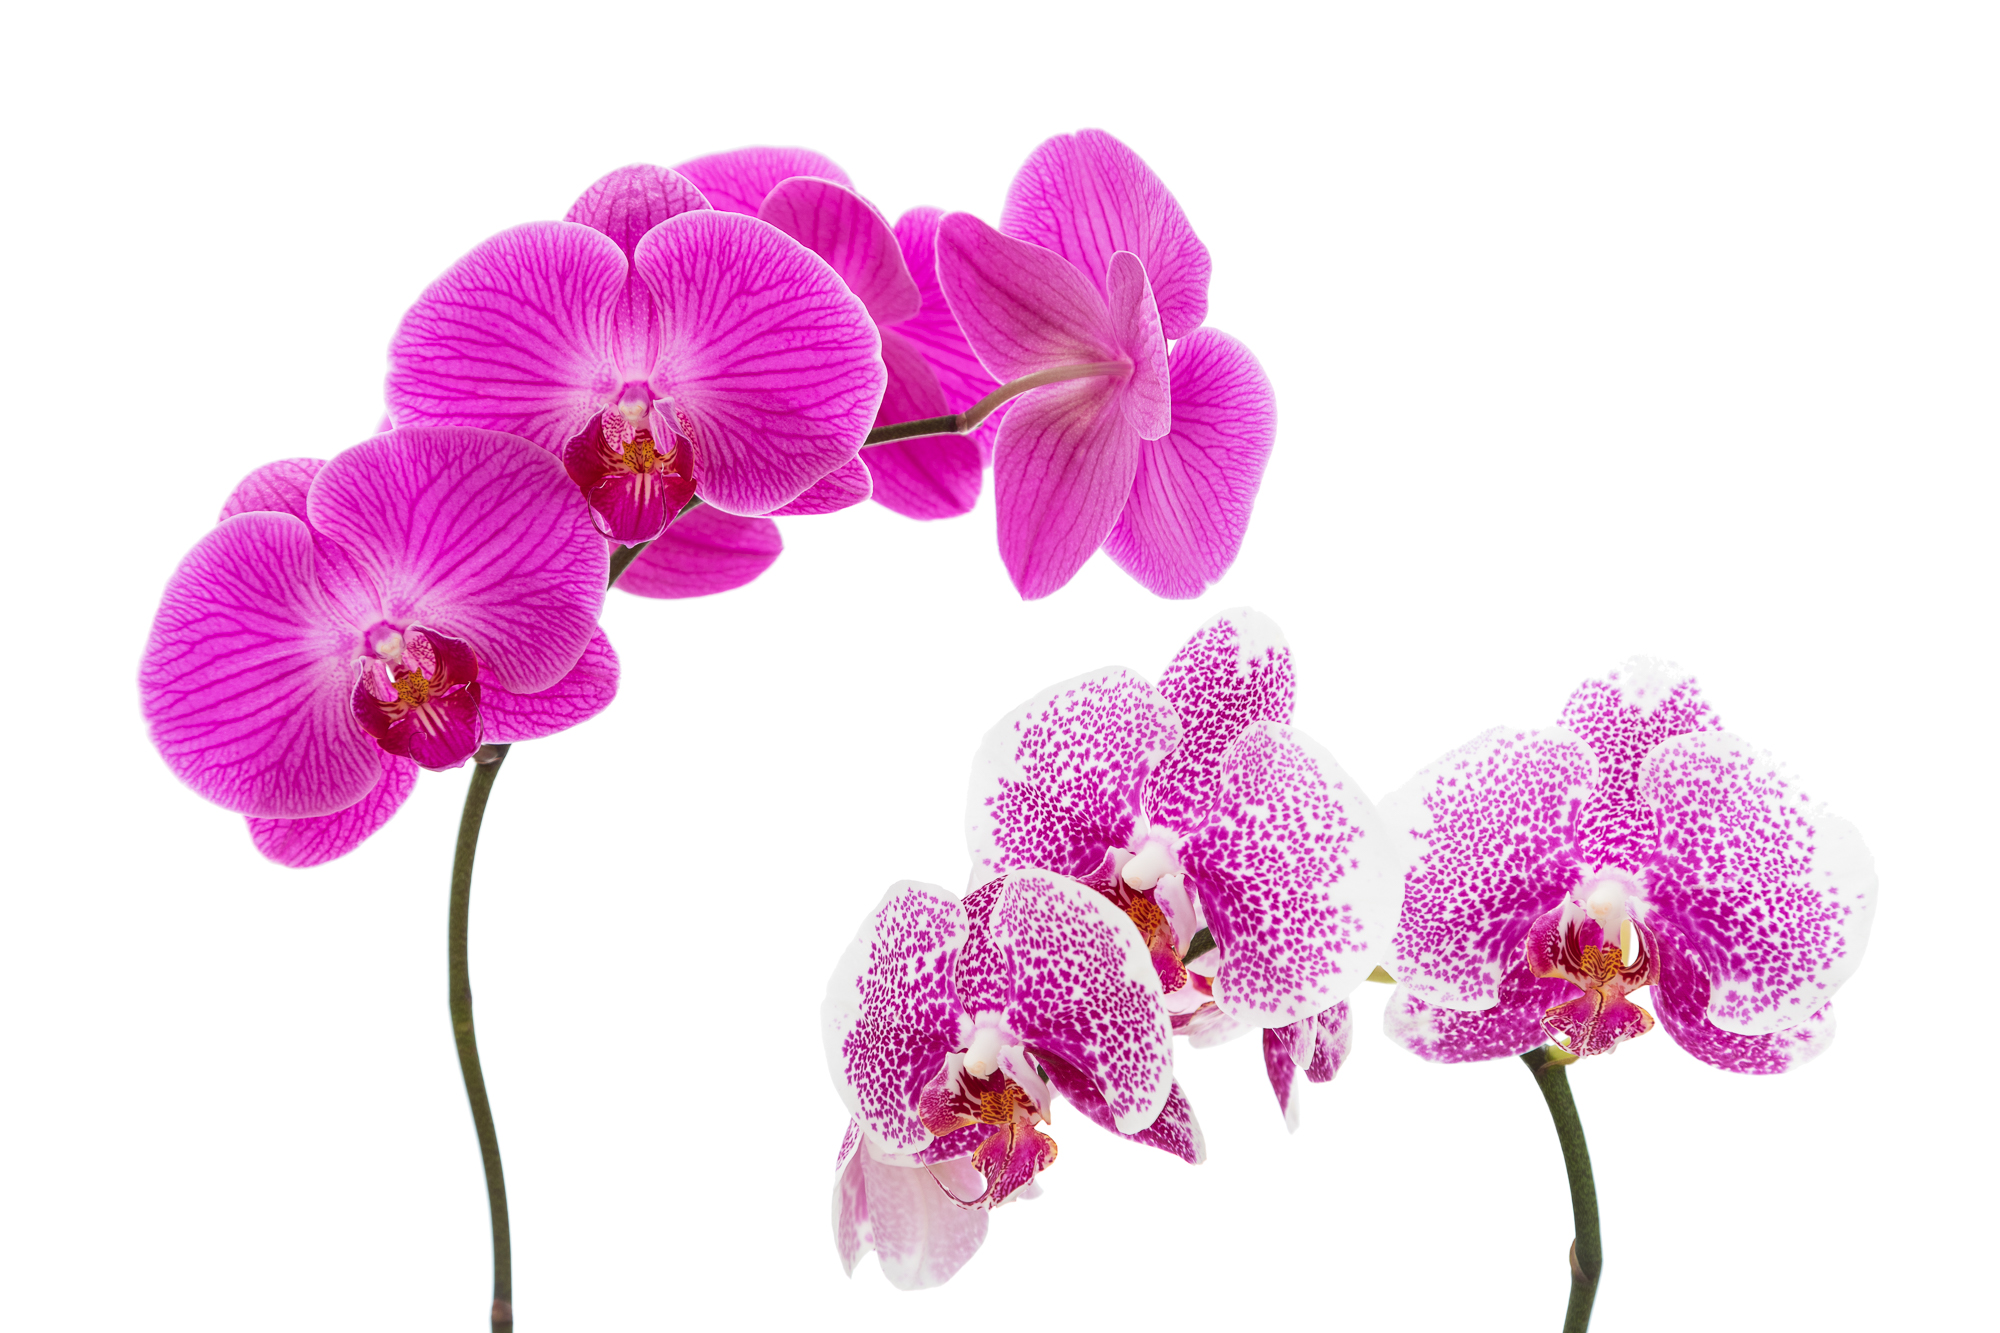 Pink Orchid Blooms on White Background